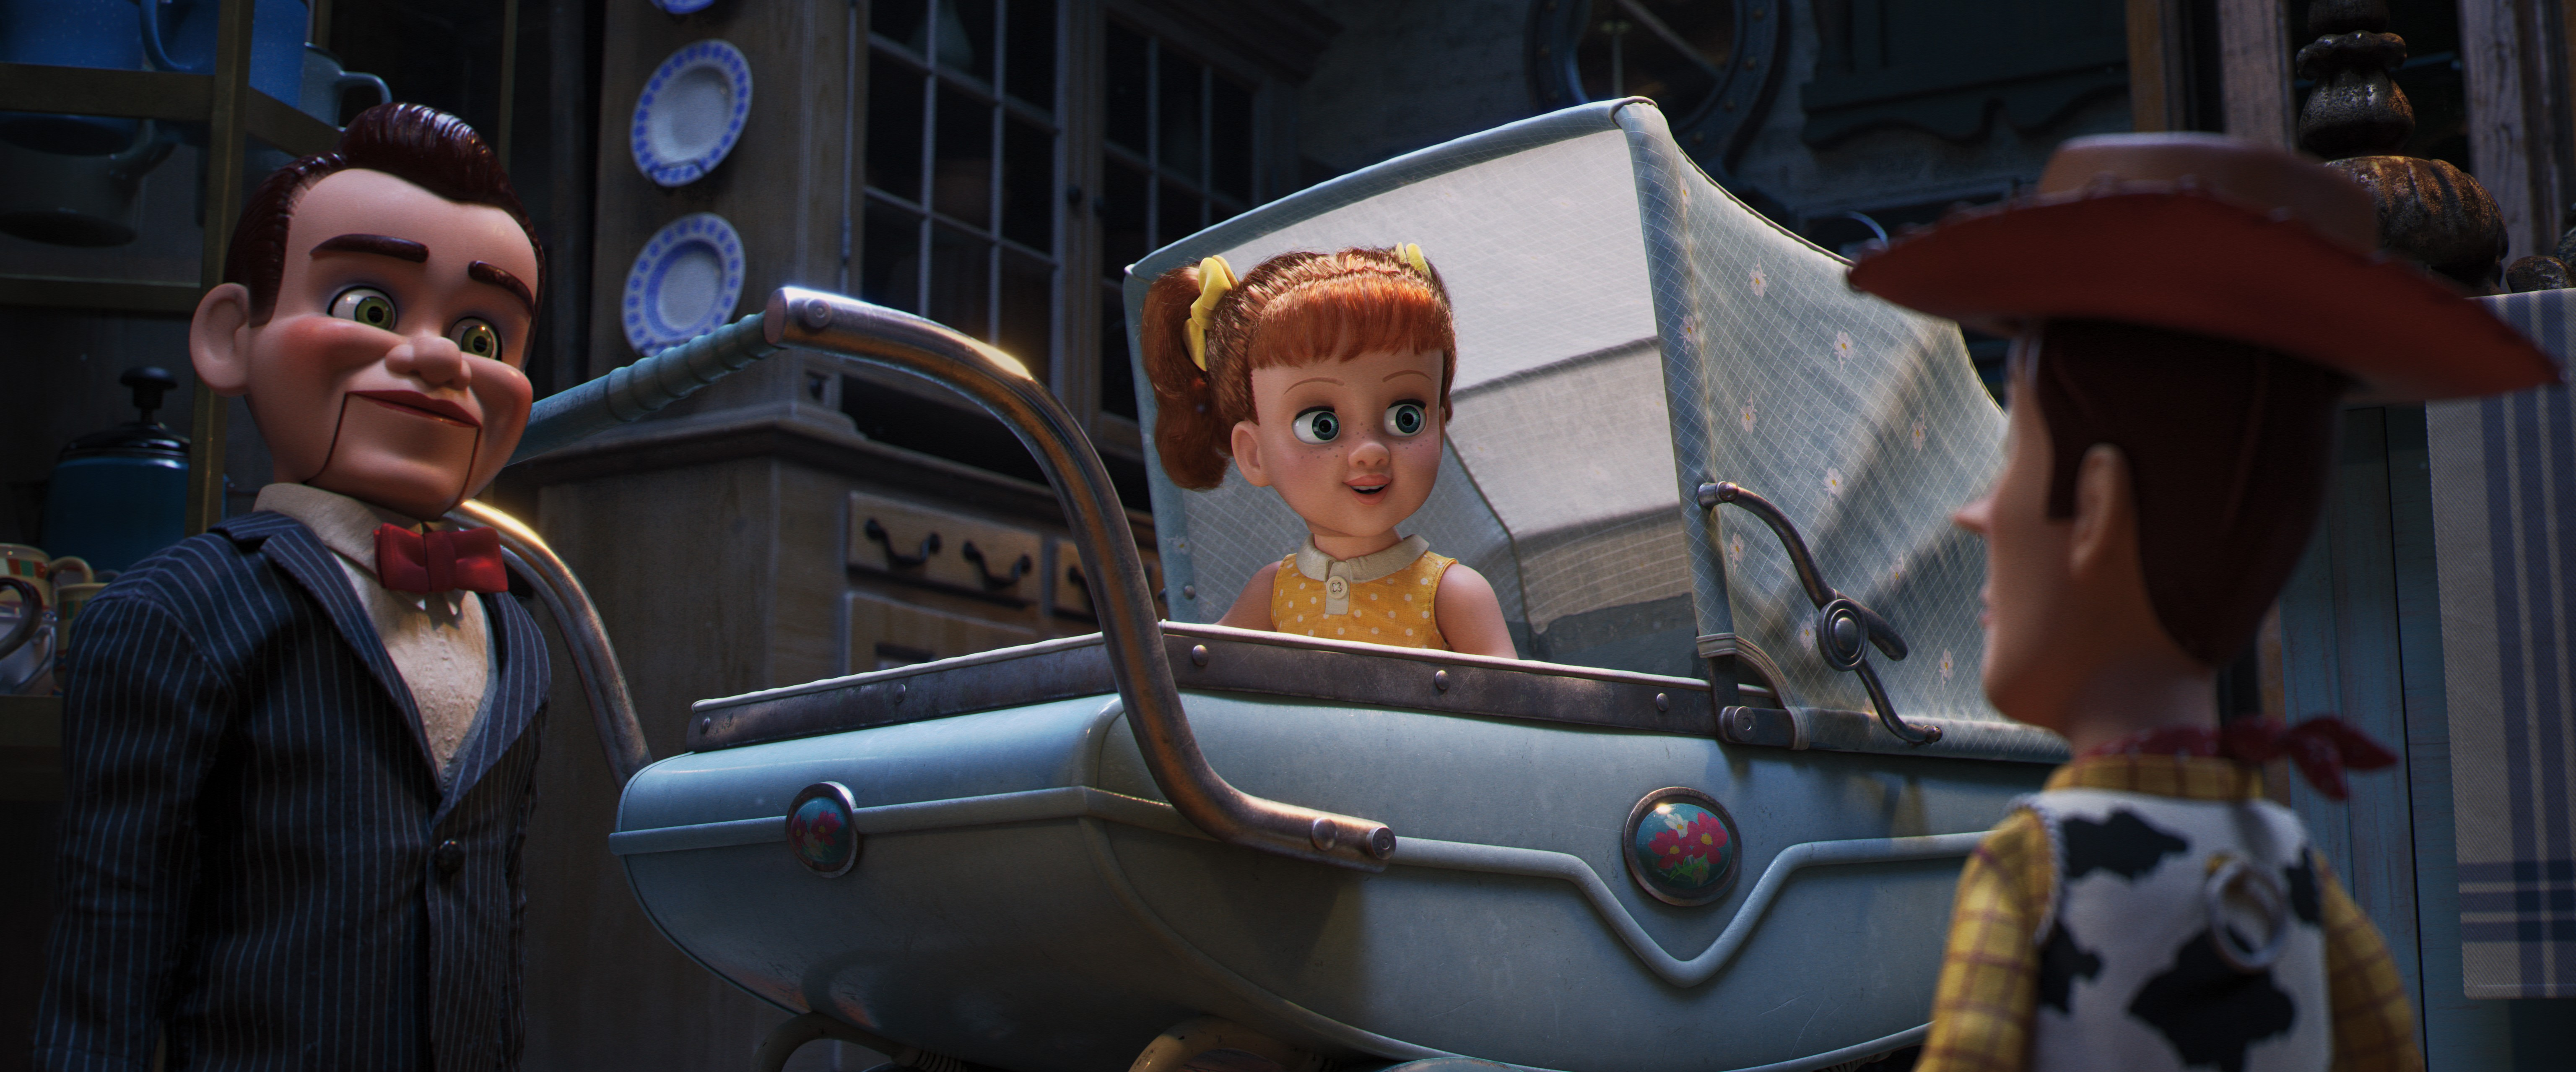 """GABBY GABBY – In Disney•Pixar's """"Toy Story 4,"""" Woody finds himself in Second Chance Antiques, home to an adorable, talking pull-string doll from the 1950s and her crew of voiceless ventriloquist dummies. Unfortunately for Gabby Gabby, a manufacturing defe (Foto: Divulgação)"""